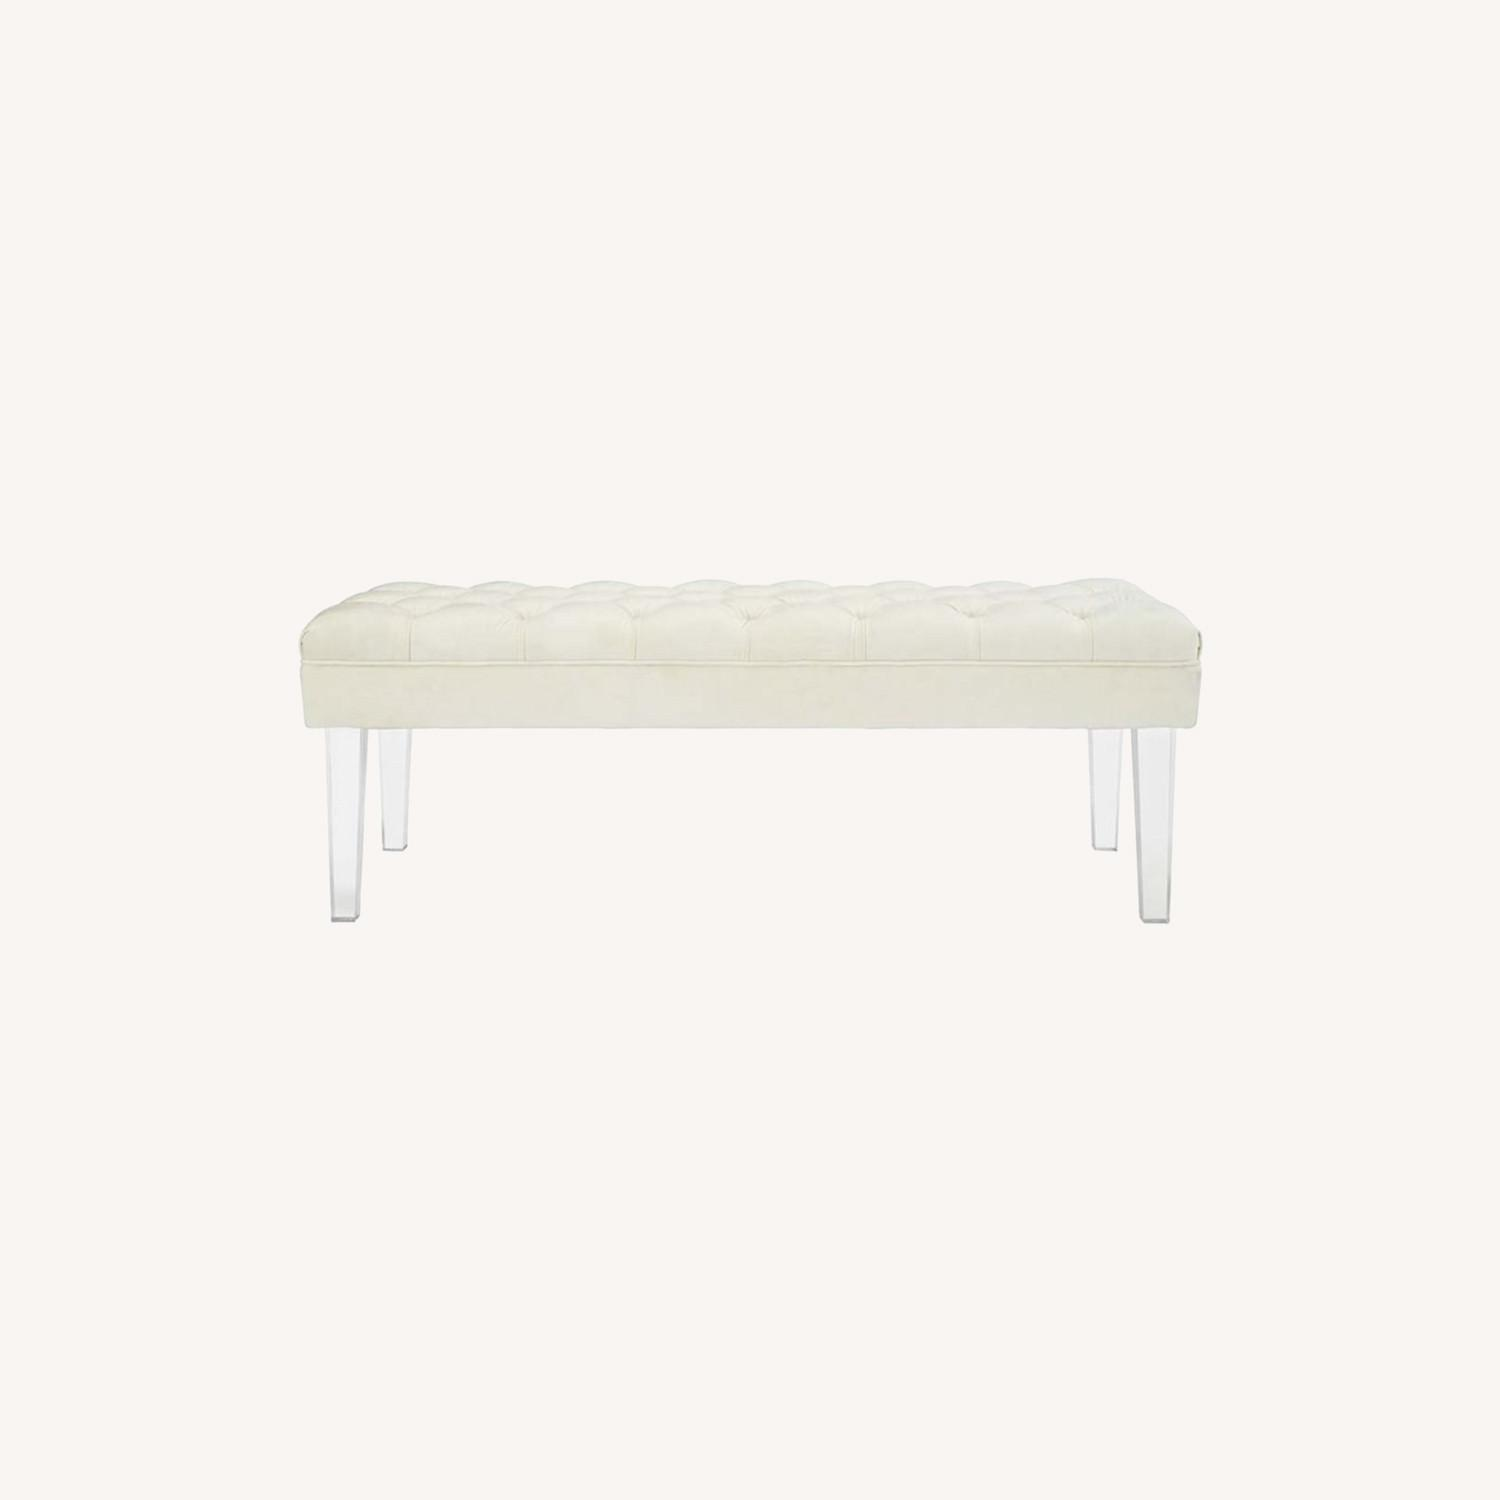 Bench In Ivory Velvet Fabric W/ Clear Acrylic Legs - image-5